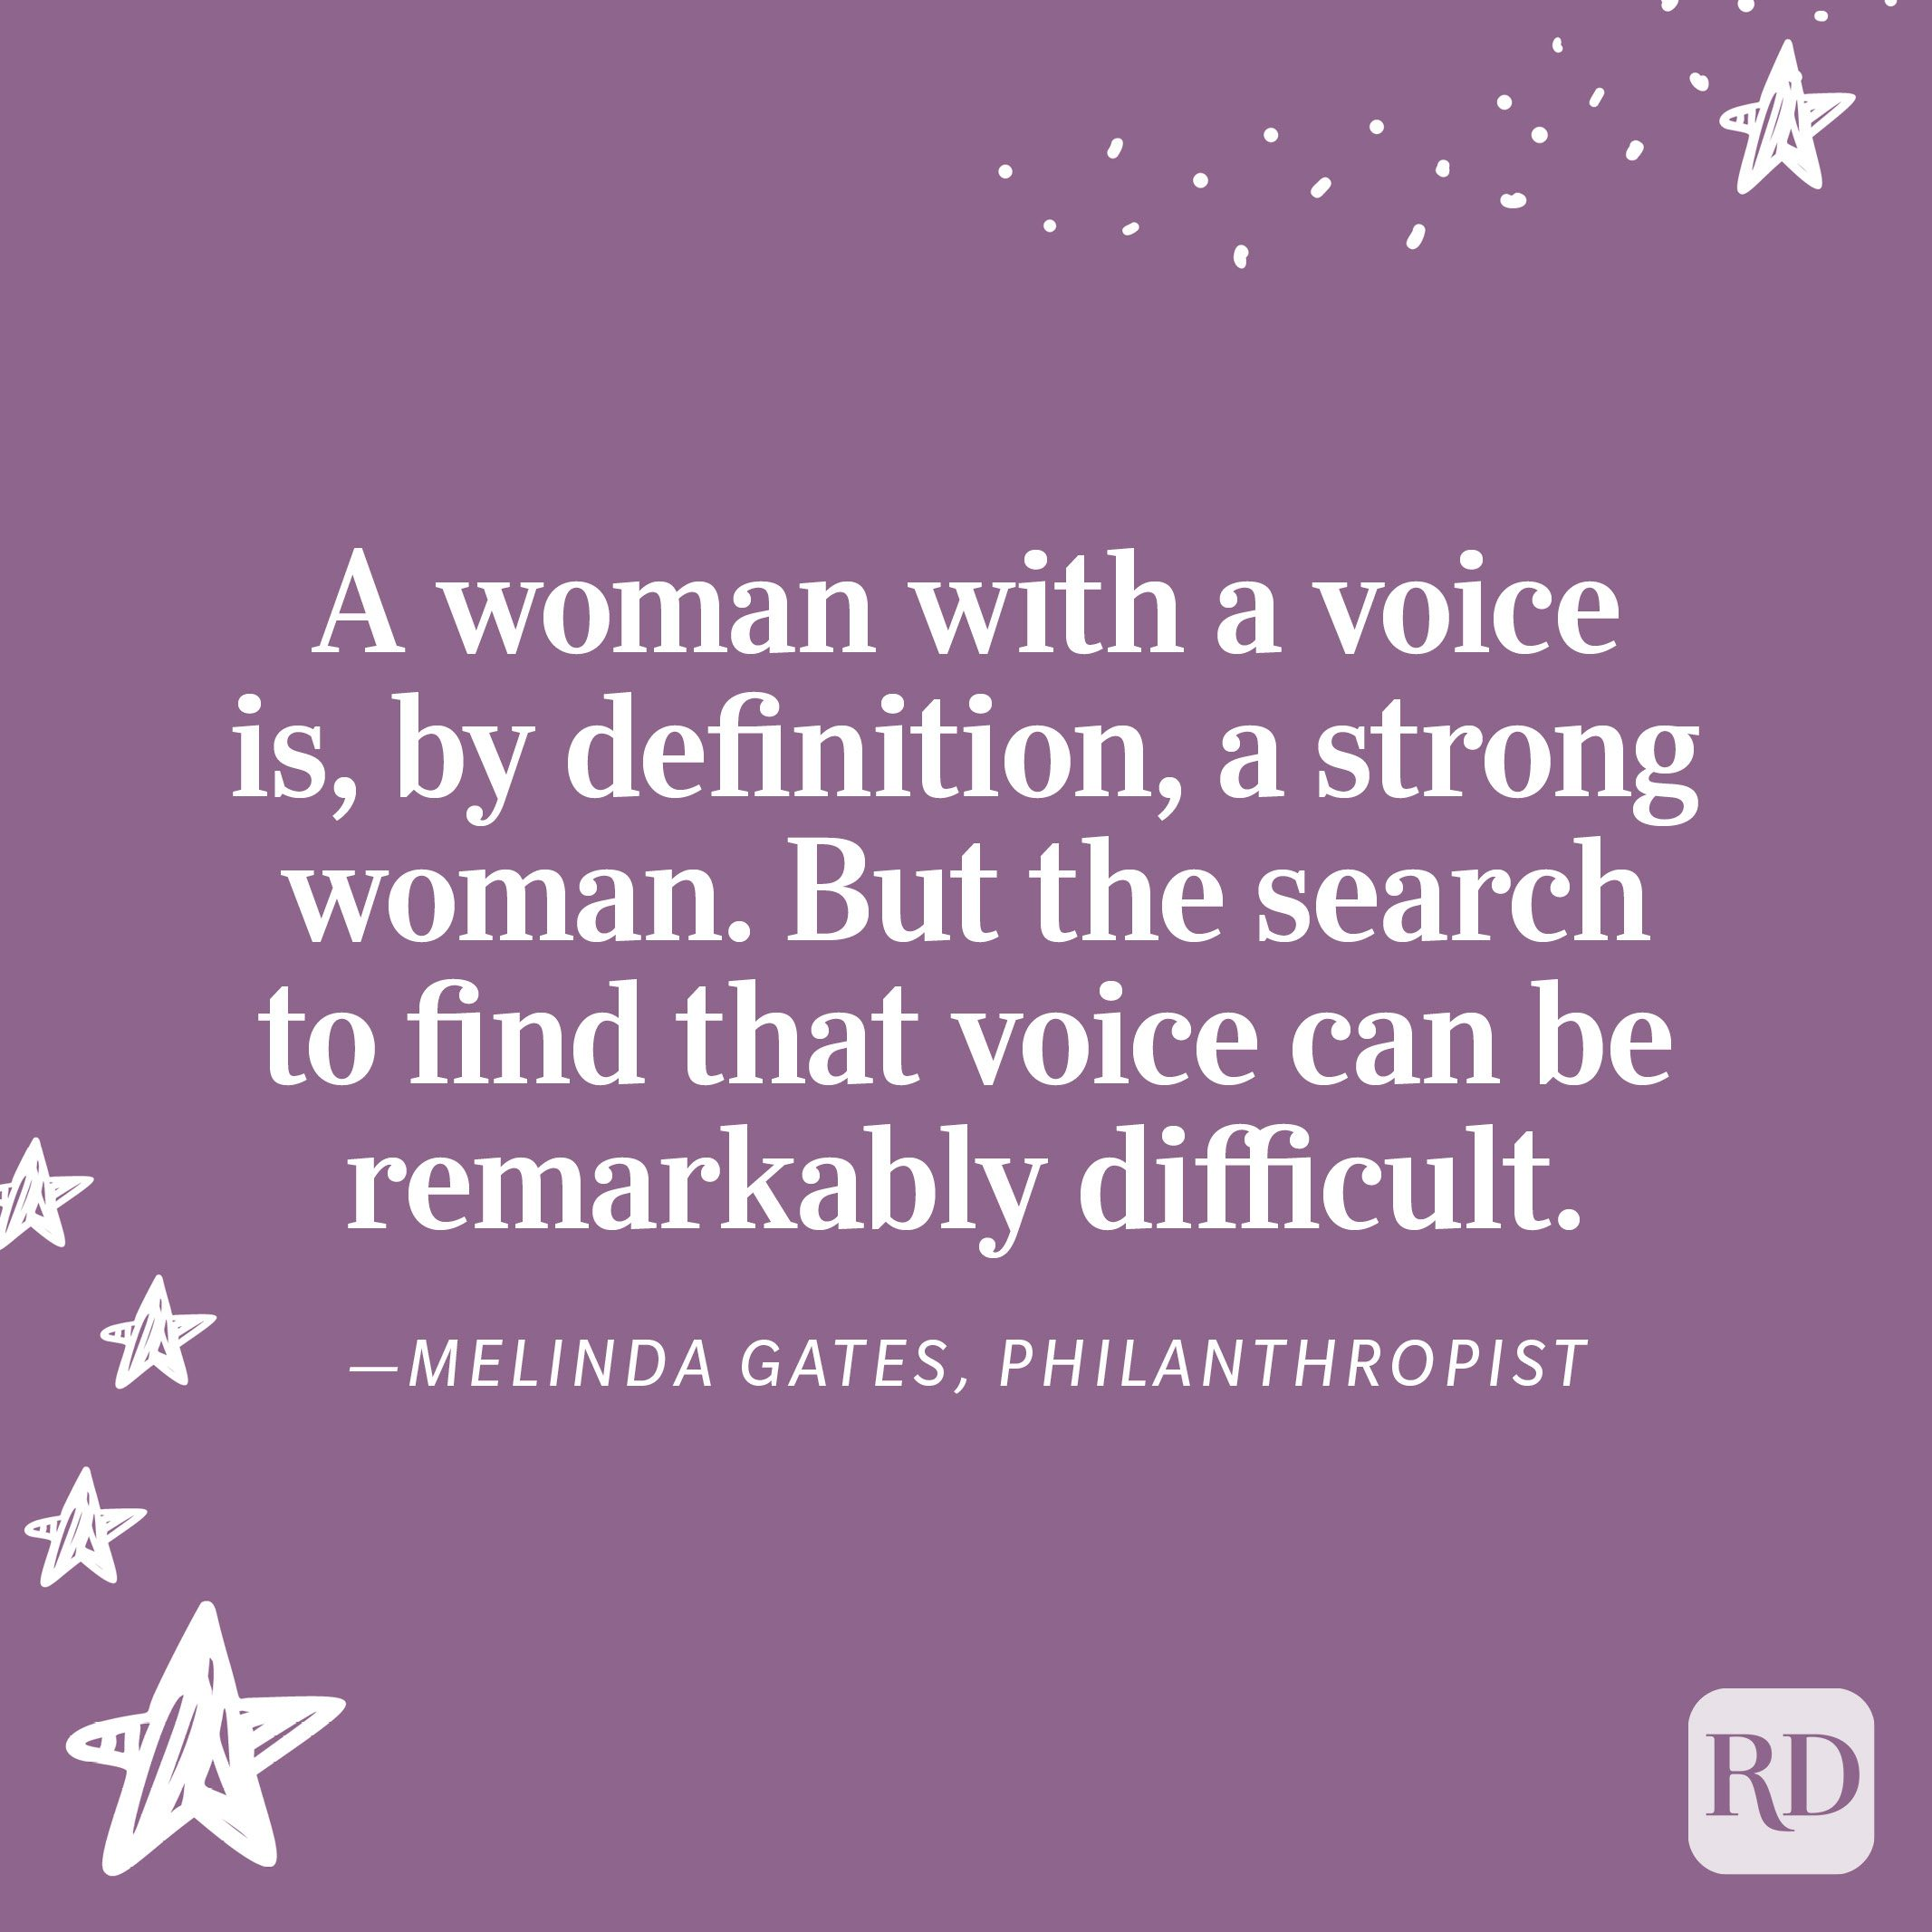 """""""A woman with a voice is, by definition, a strong woman. But the search to find that voice can be remarkably difficult."""" —Melinda Gates, philanthropist"""